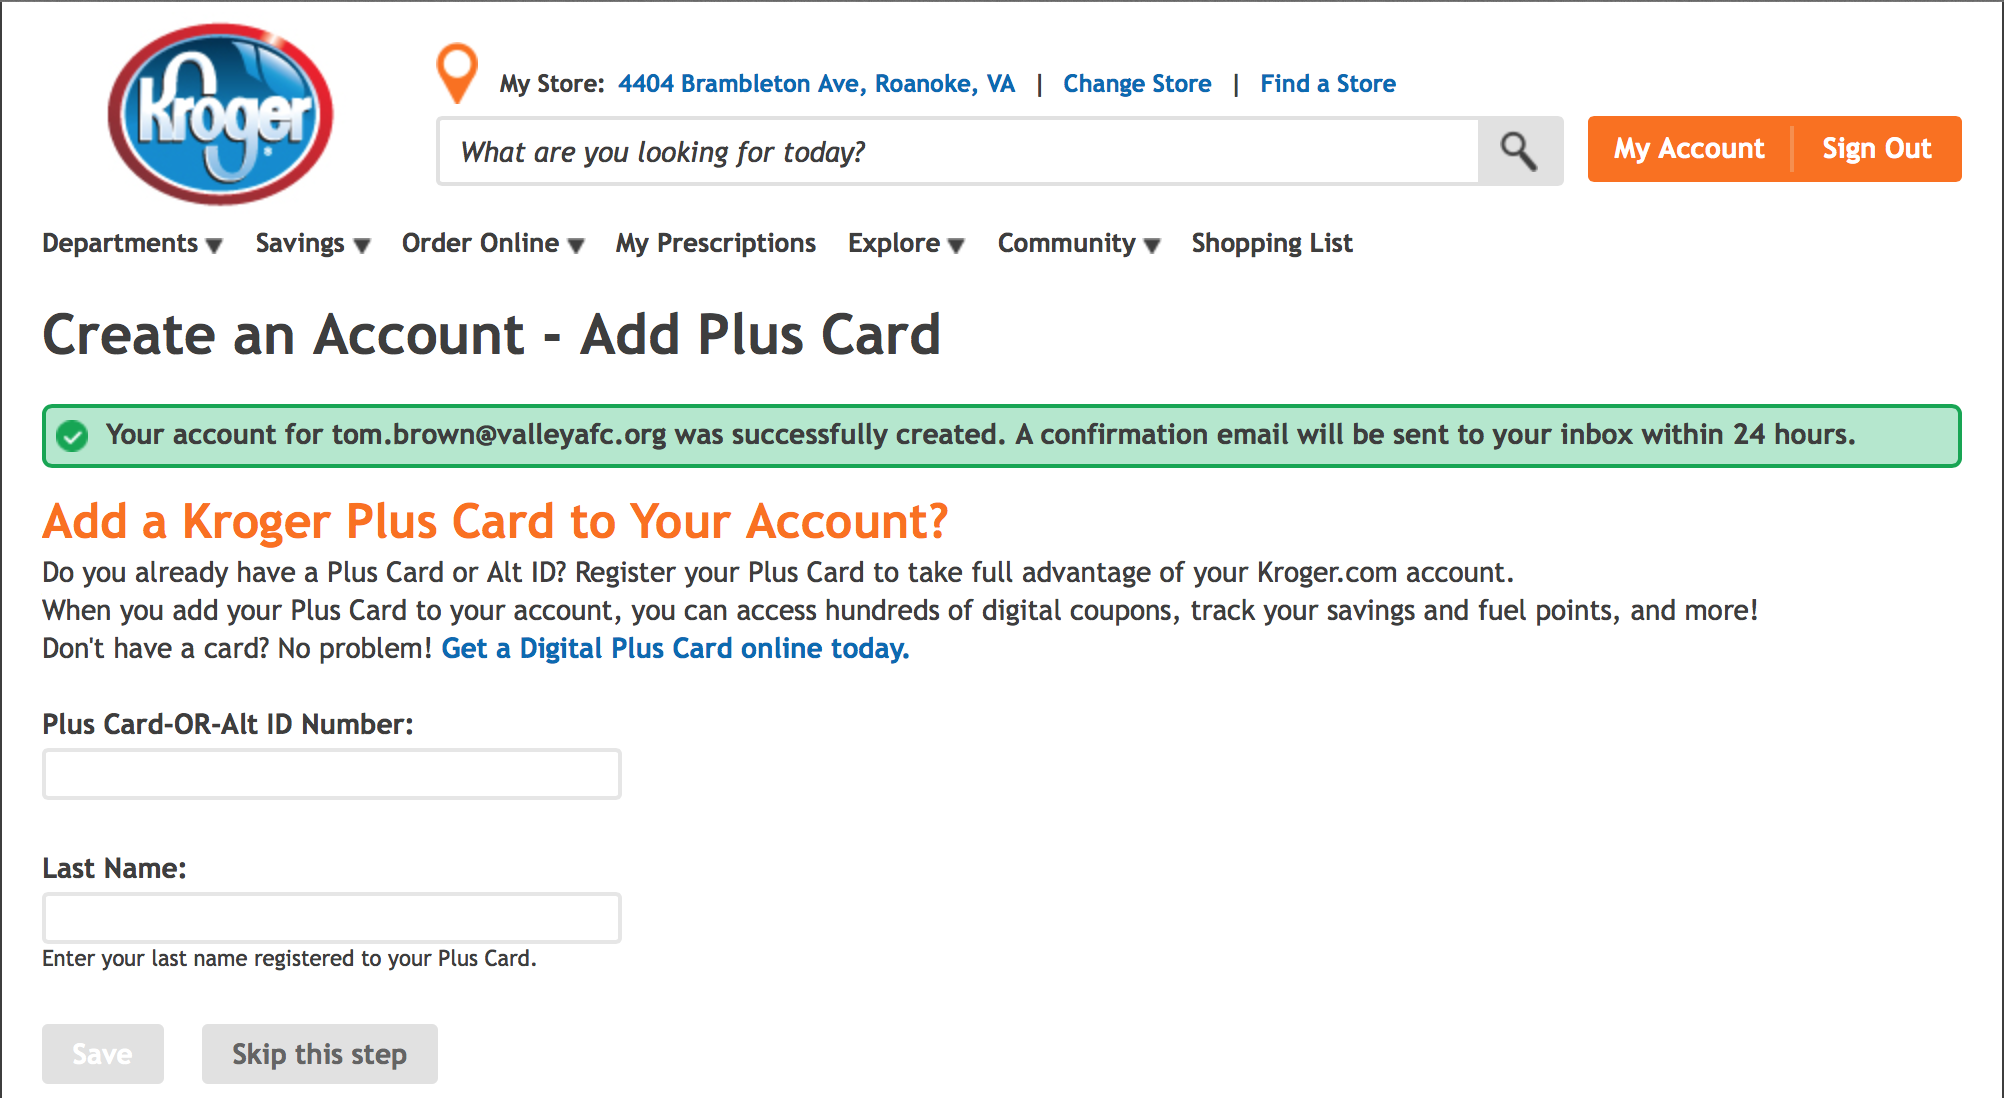 After account creation, you will be asked to link a Kroger Rewards # to the account